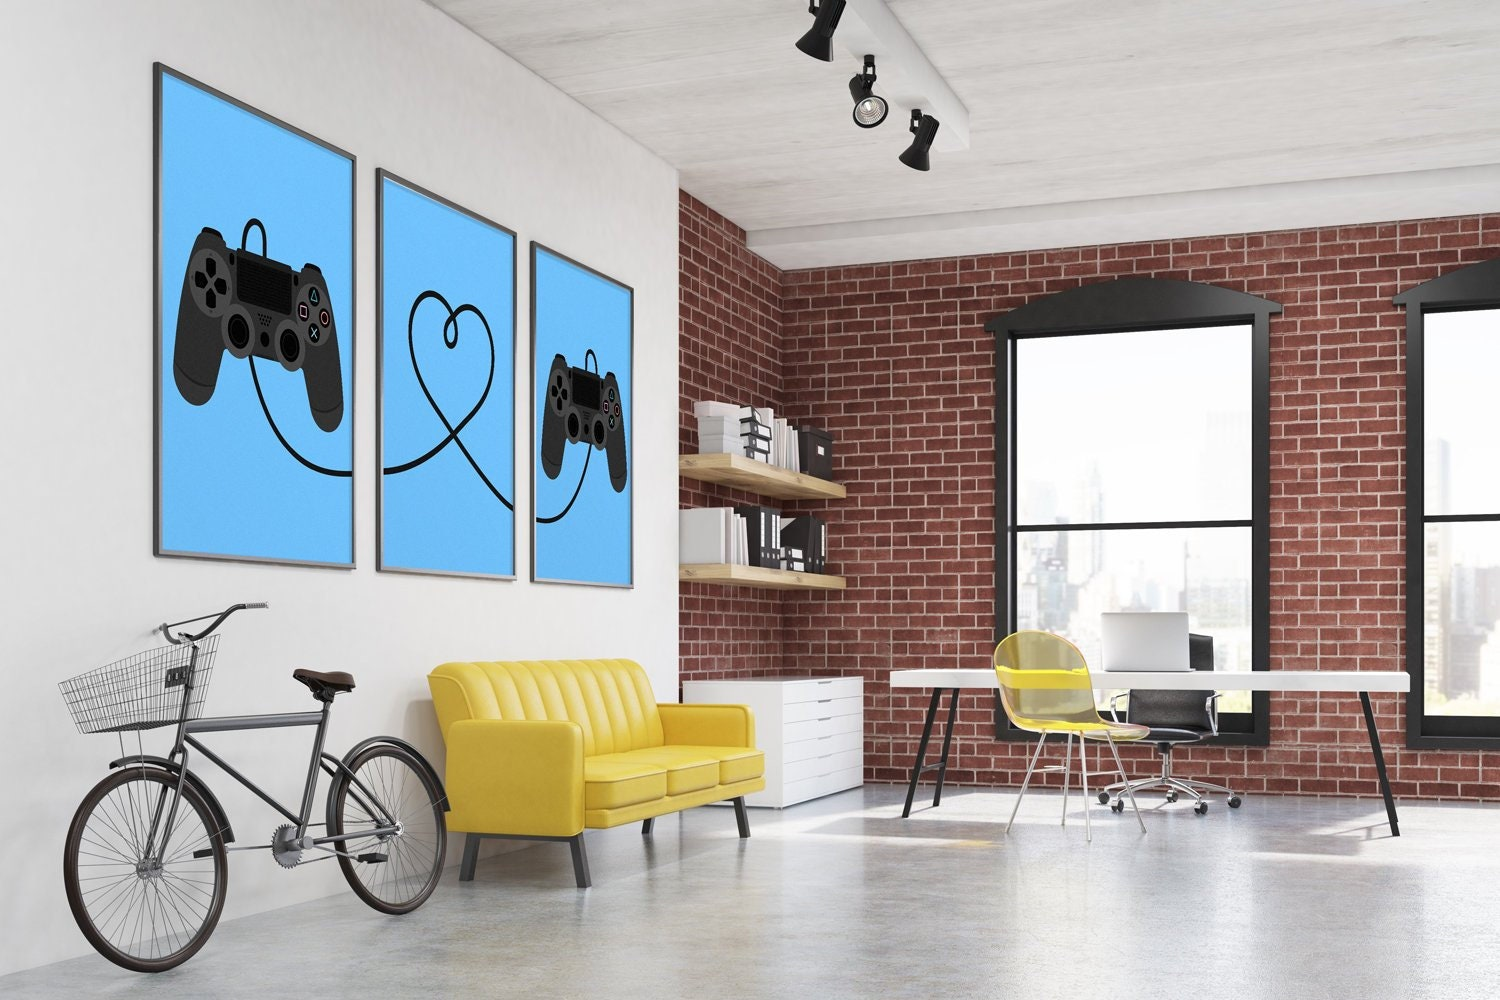 Video Game Decor Player 1 Player 2 Gamer Gifts For Him Her Etsy - 10-geek-furniture-designs